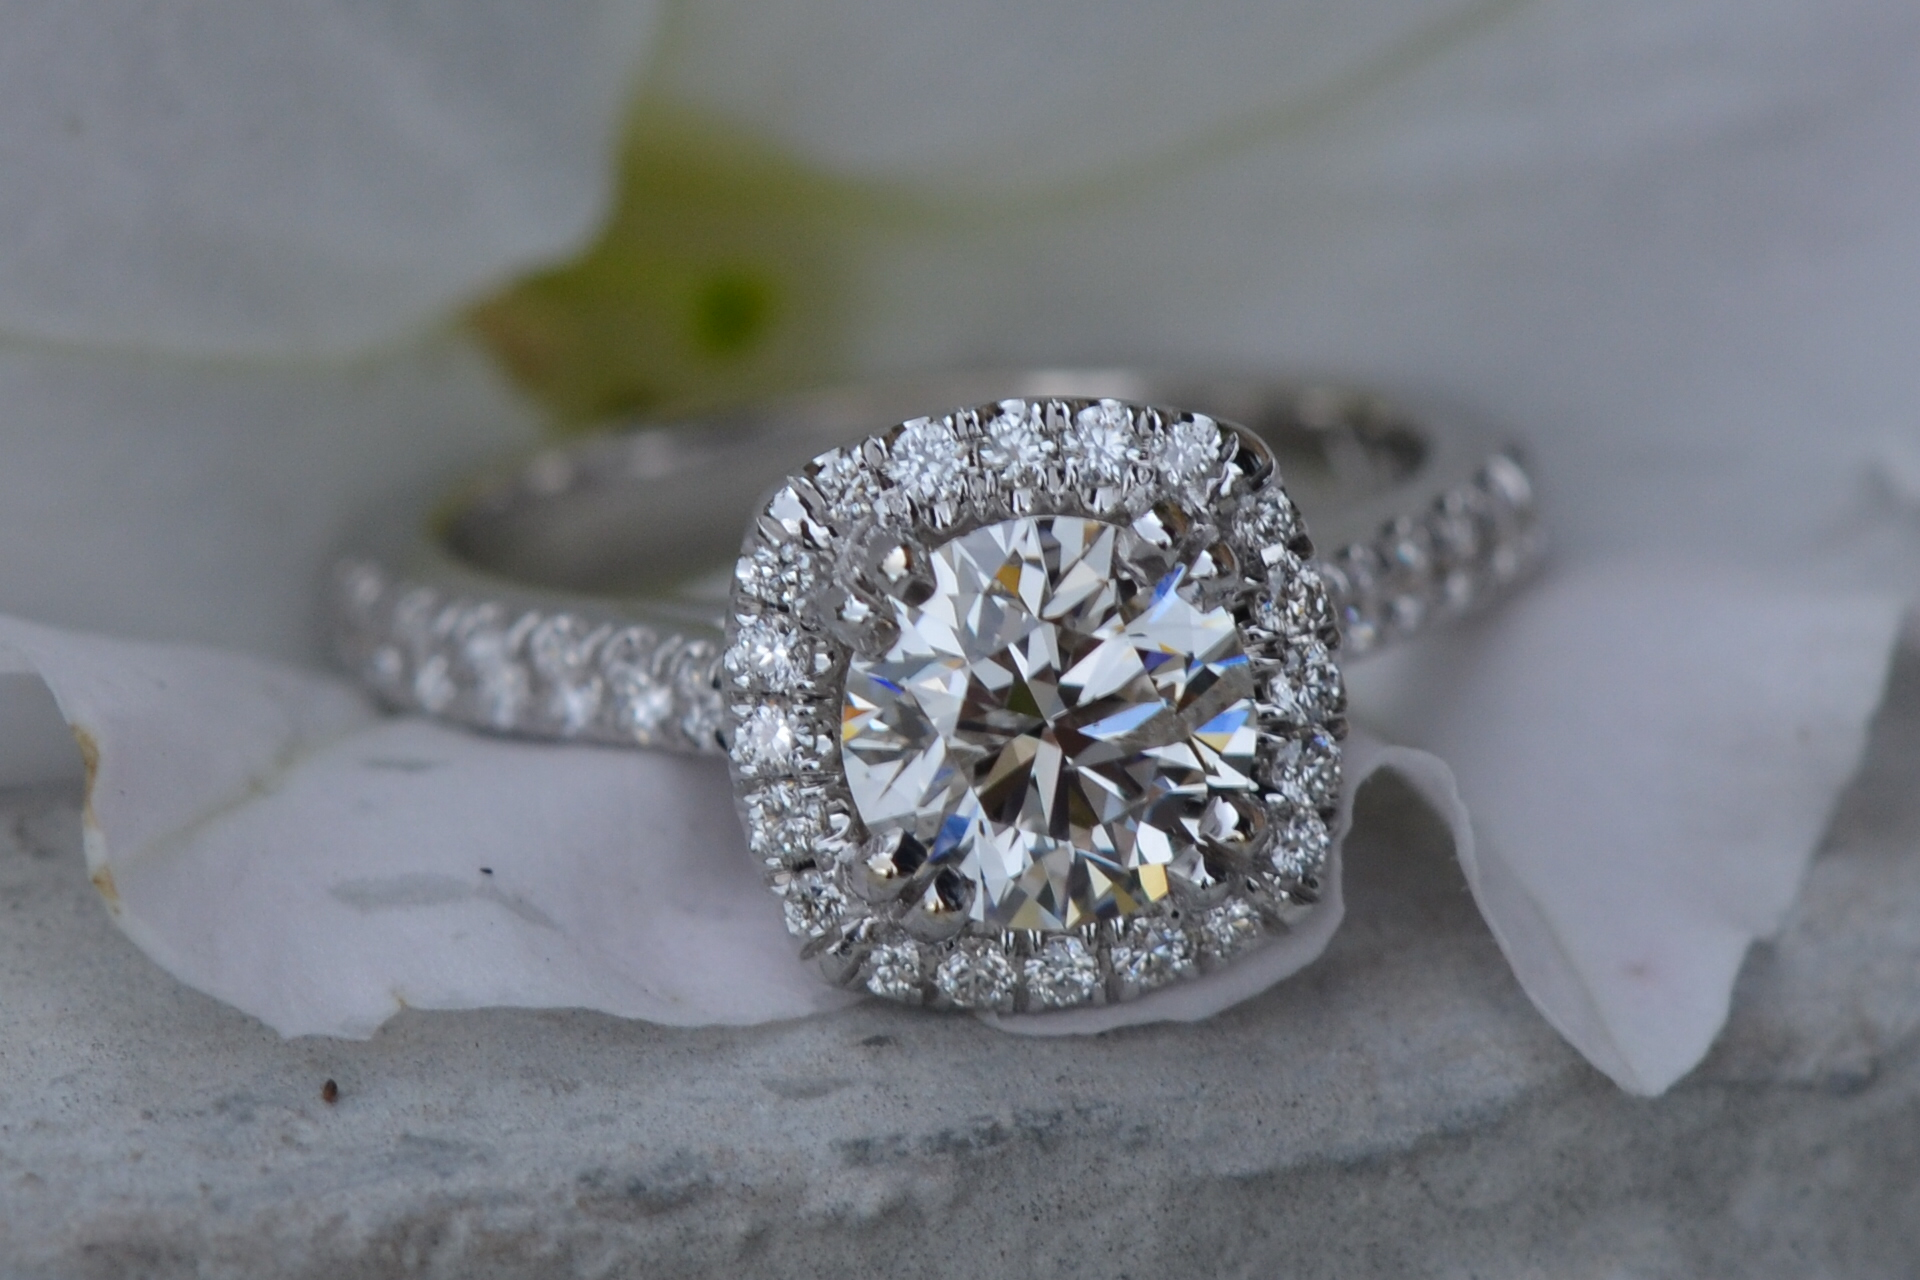 Jewelry Items for web use 033.JPG